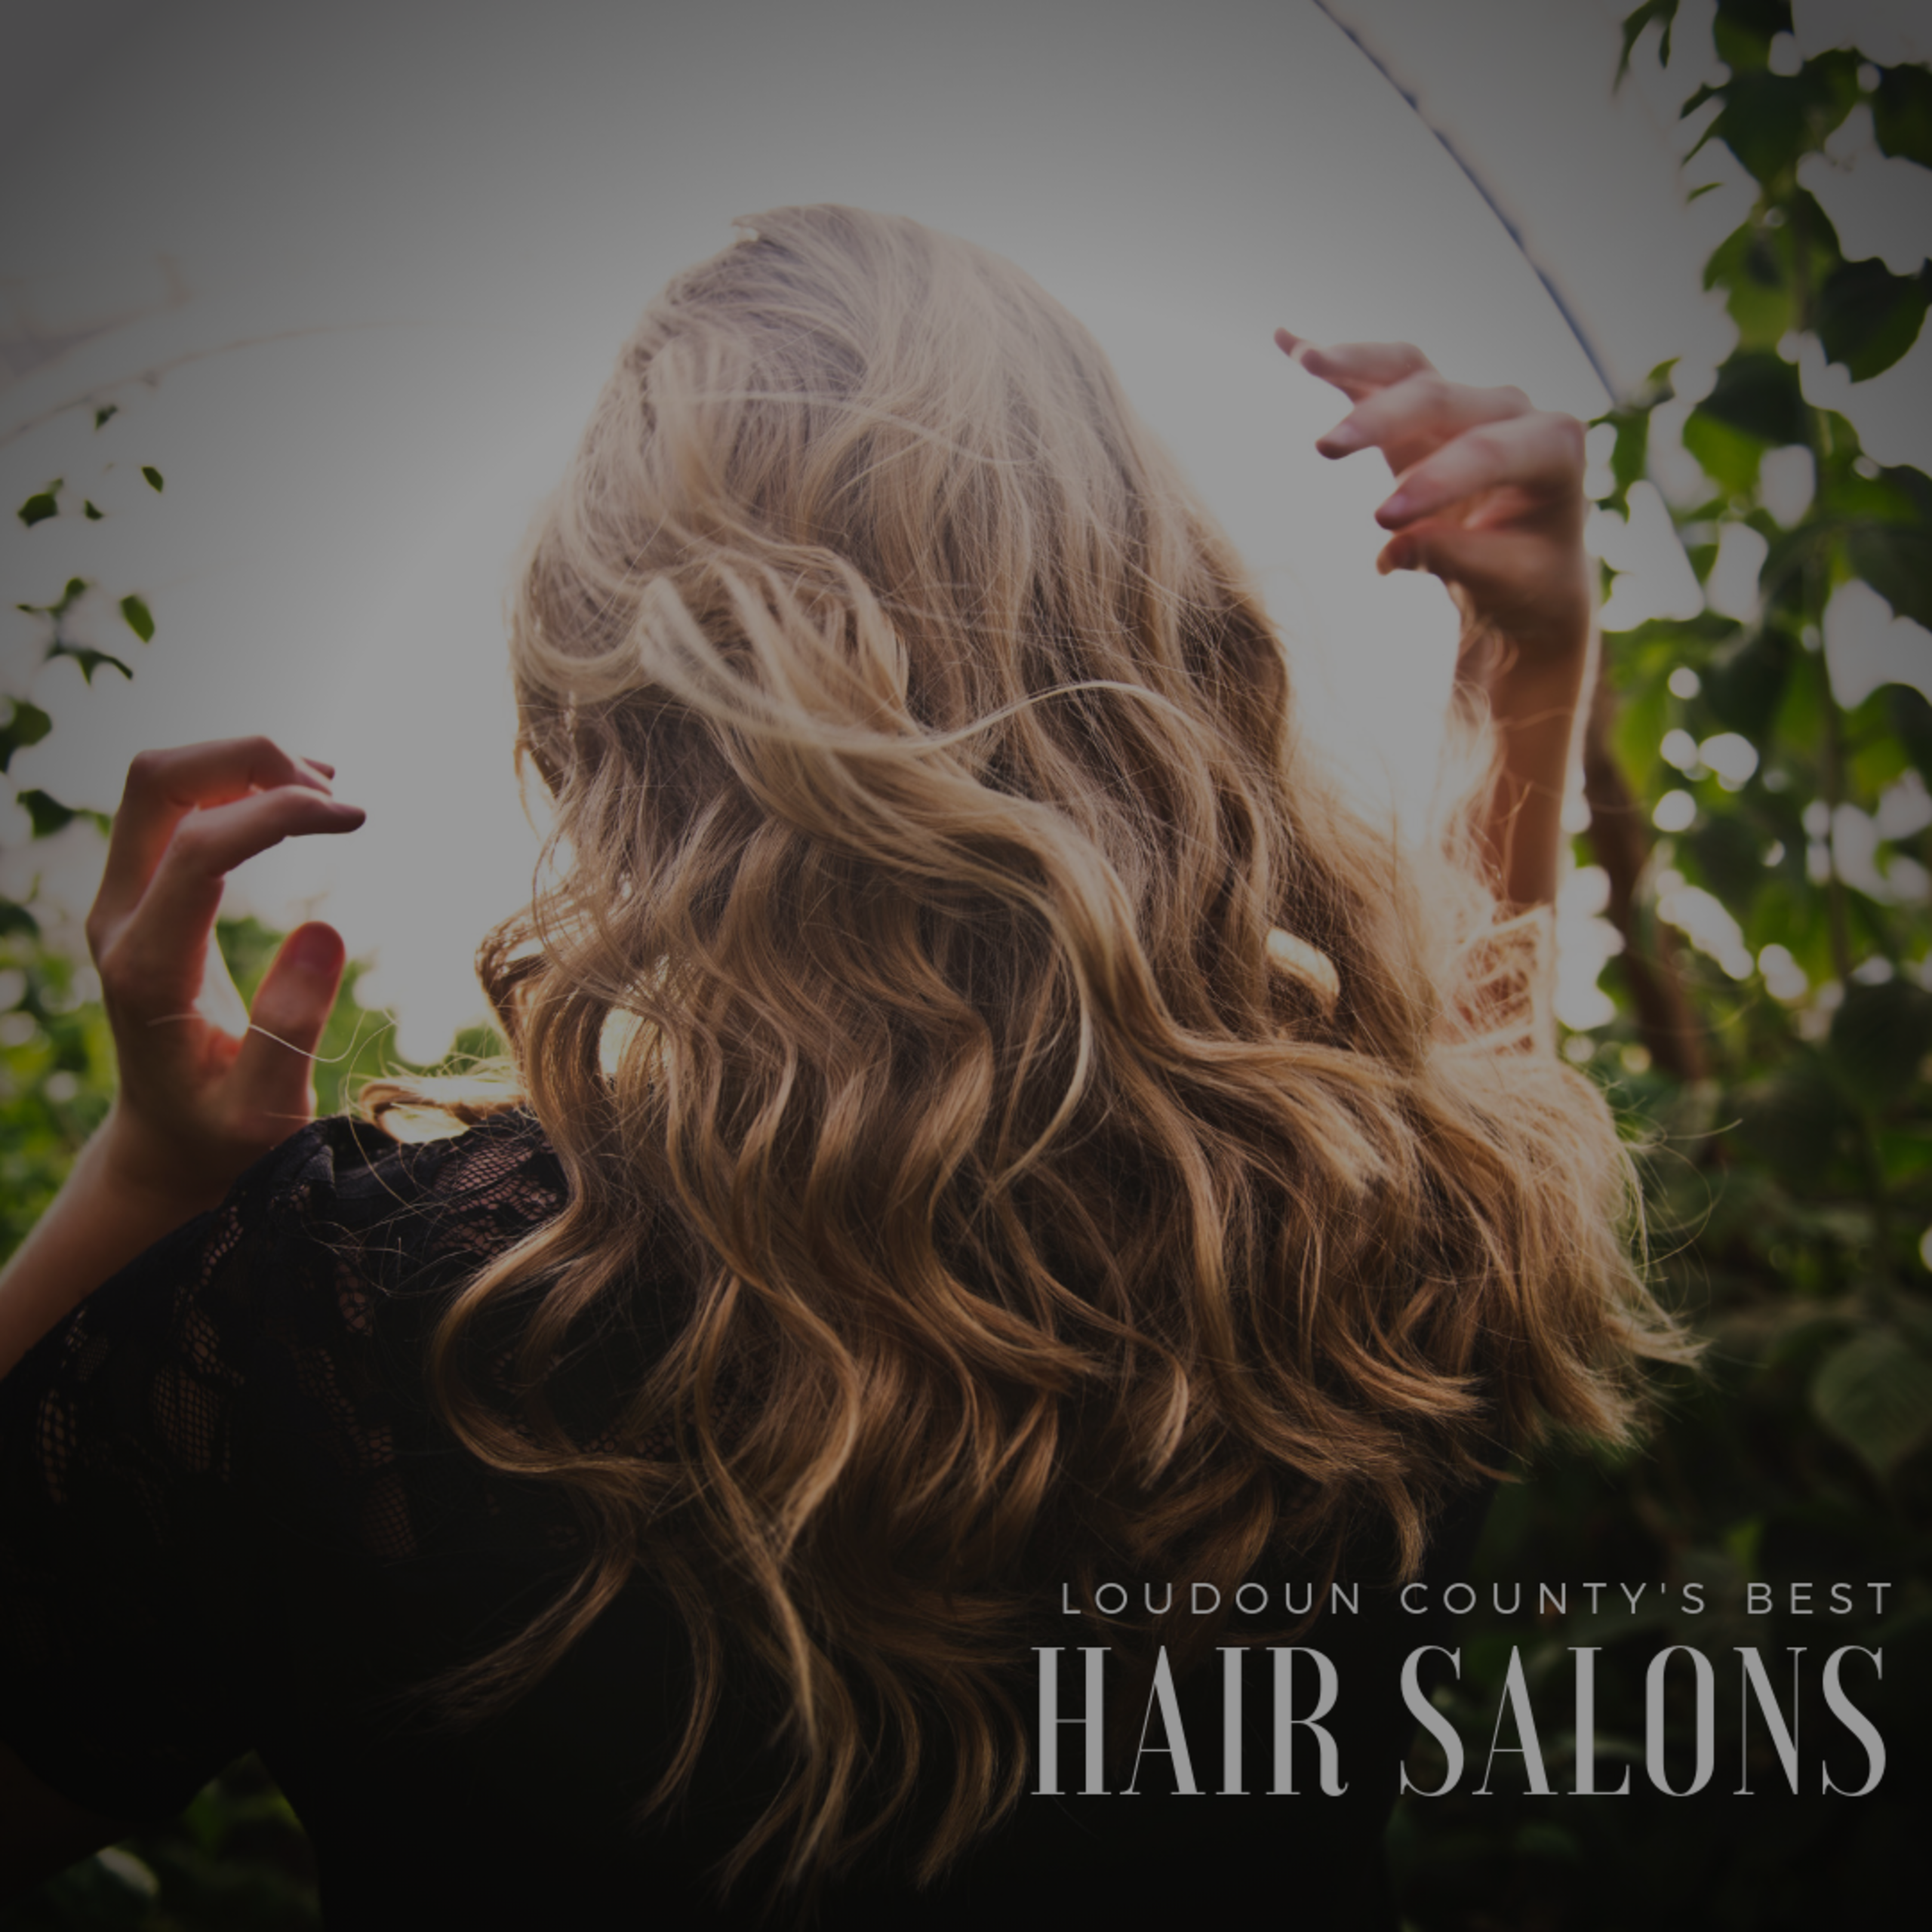 Best Hair Salons in Loudoun County